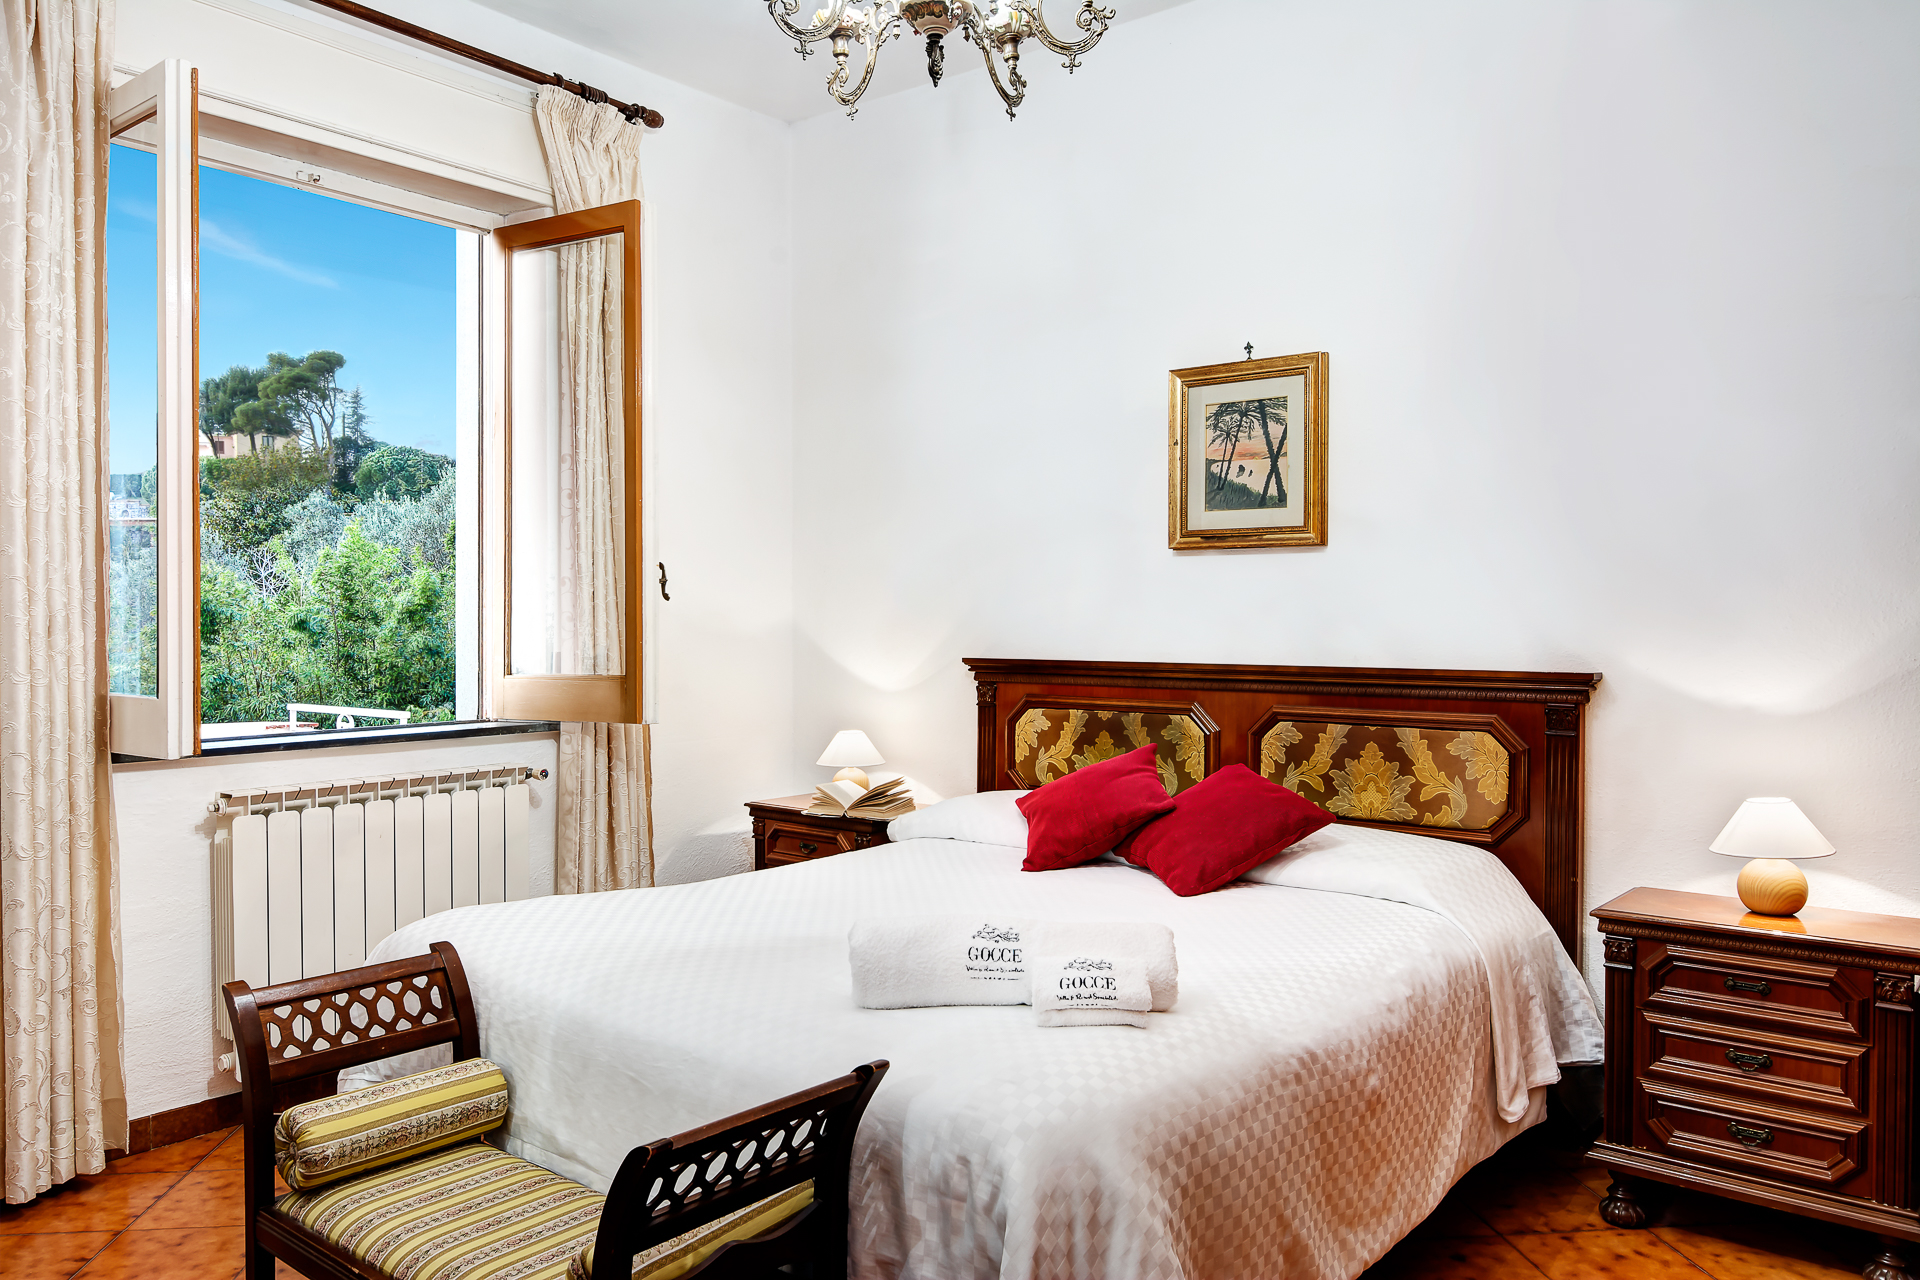 Apartment Villa Serena   Authentic Italian villa in the countryside photo 20144634